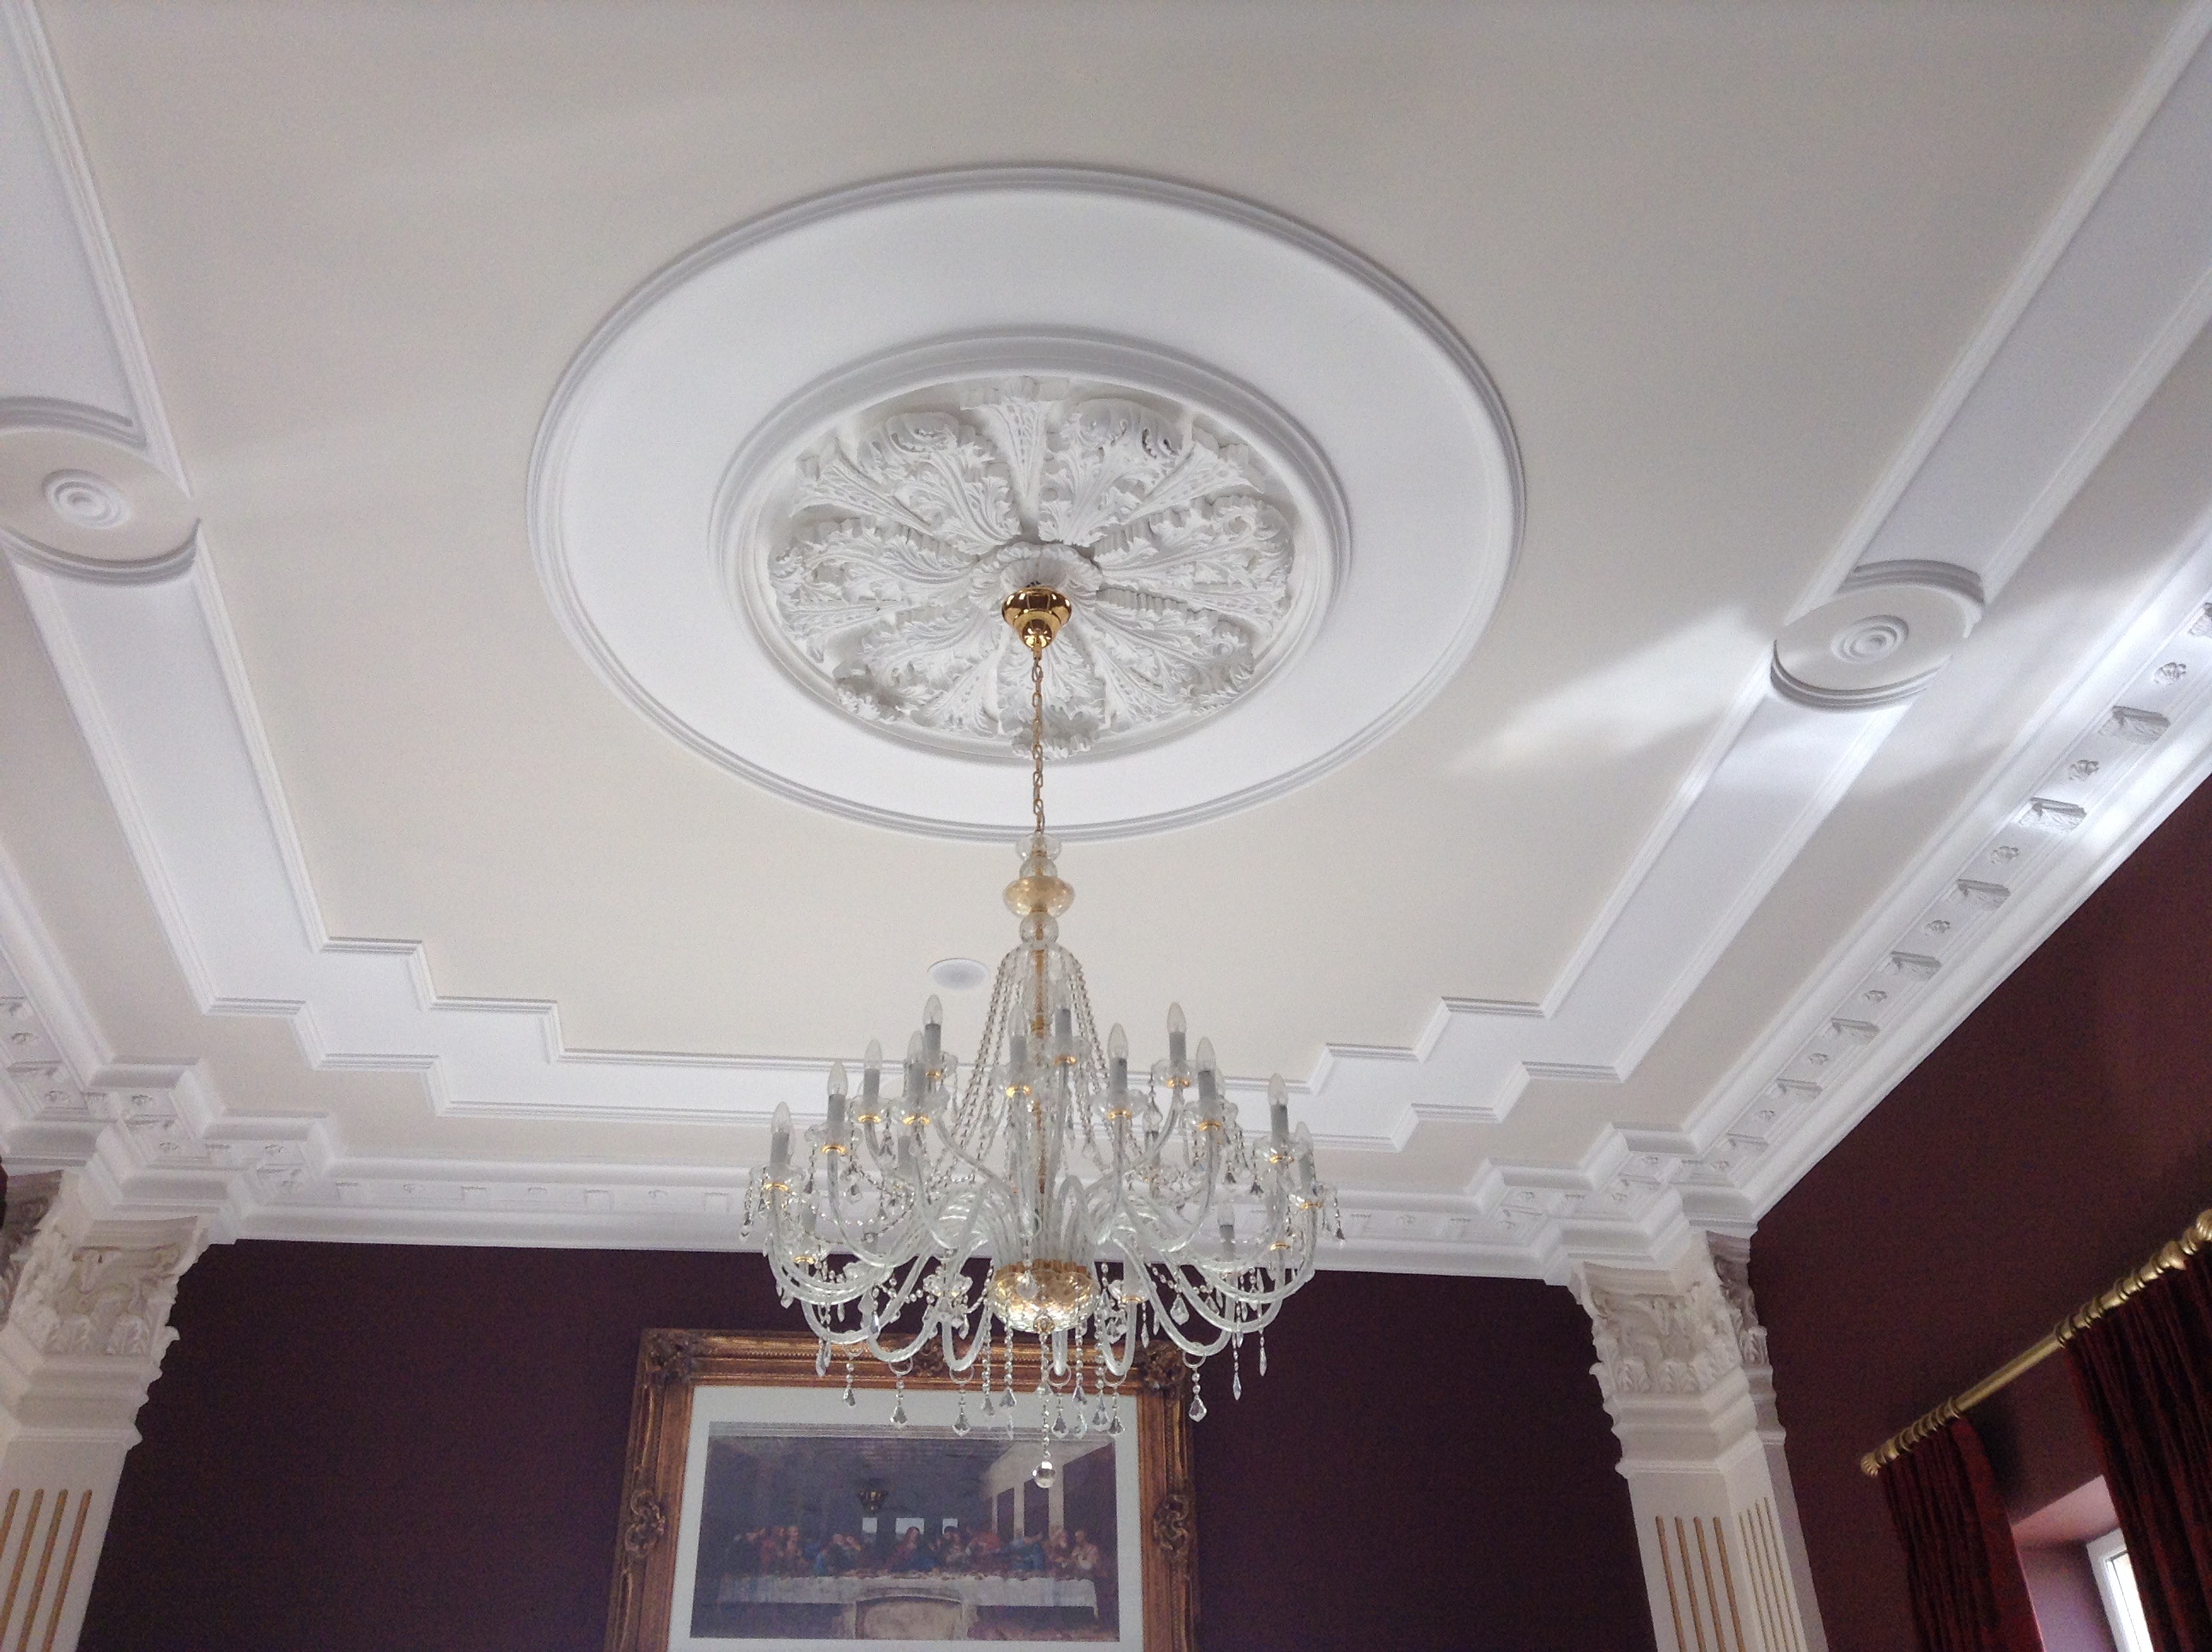 Plaster ceiling light surround ceiling designs molloy plaster mouldings cornice suppliers manufacturers tullamore aloadofball Images